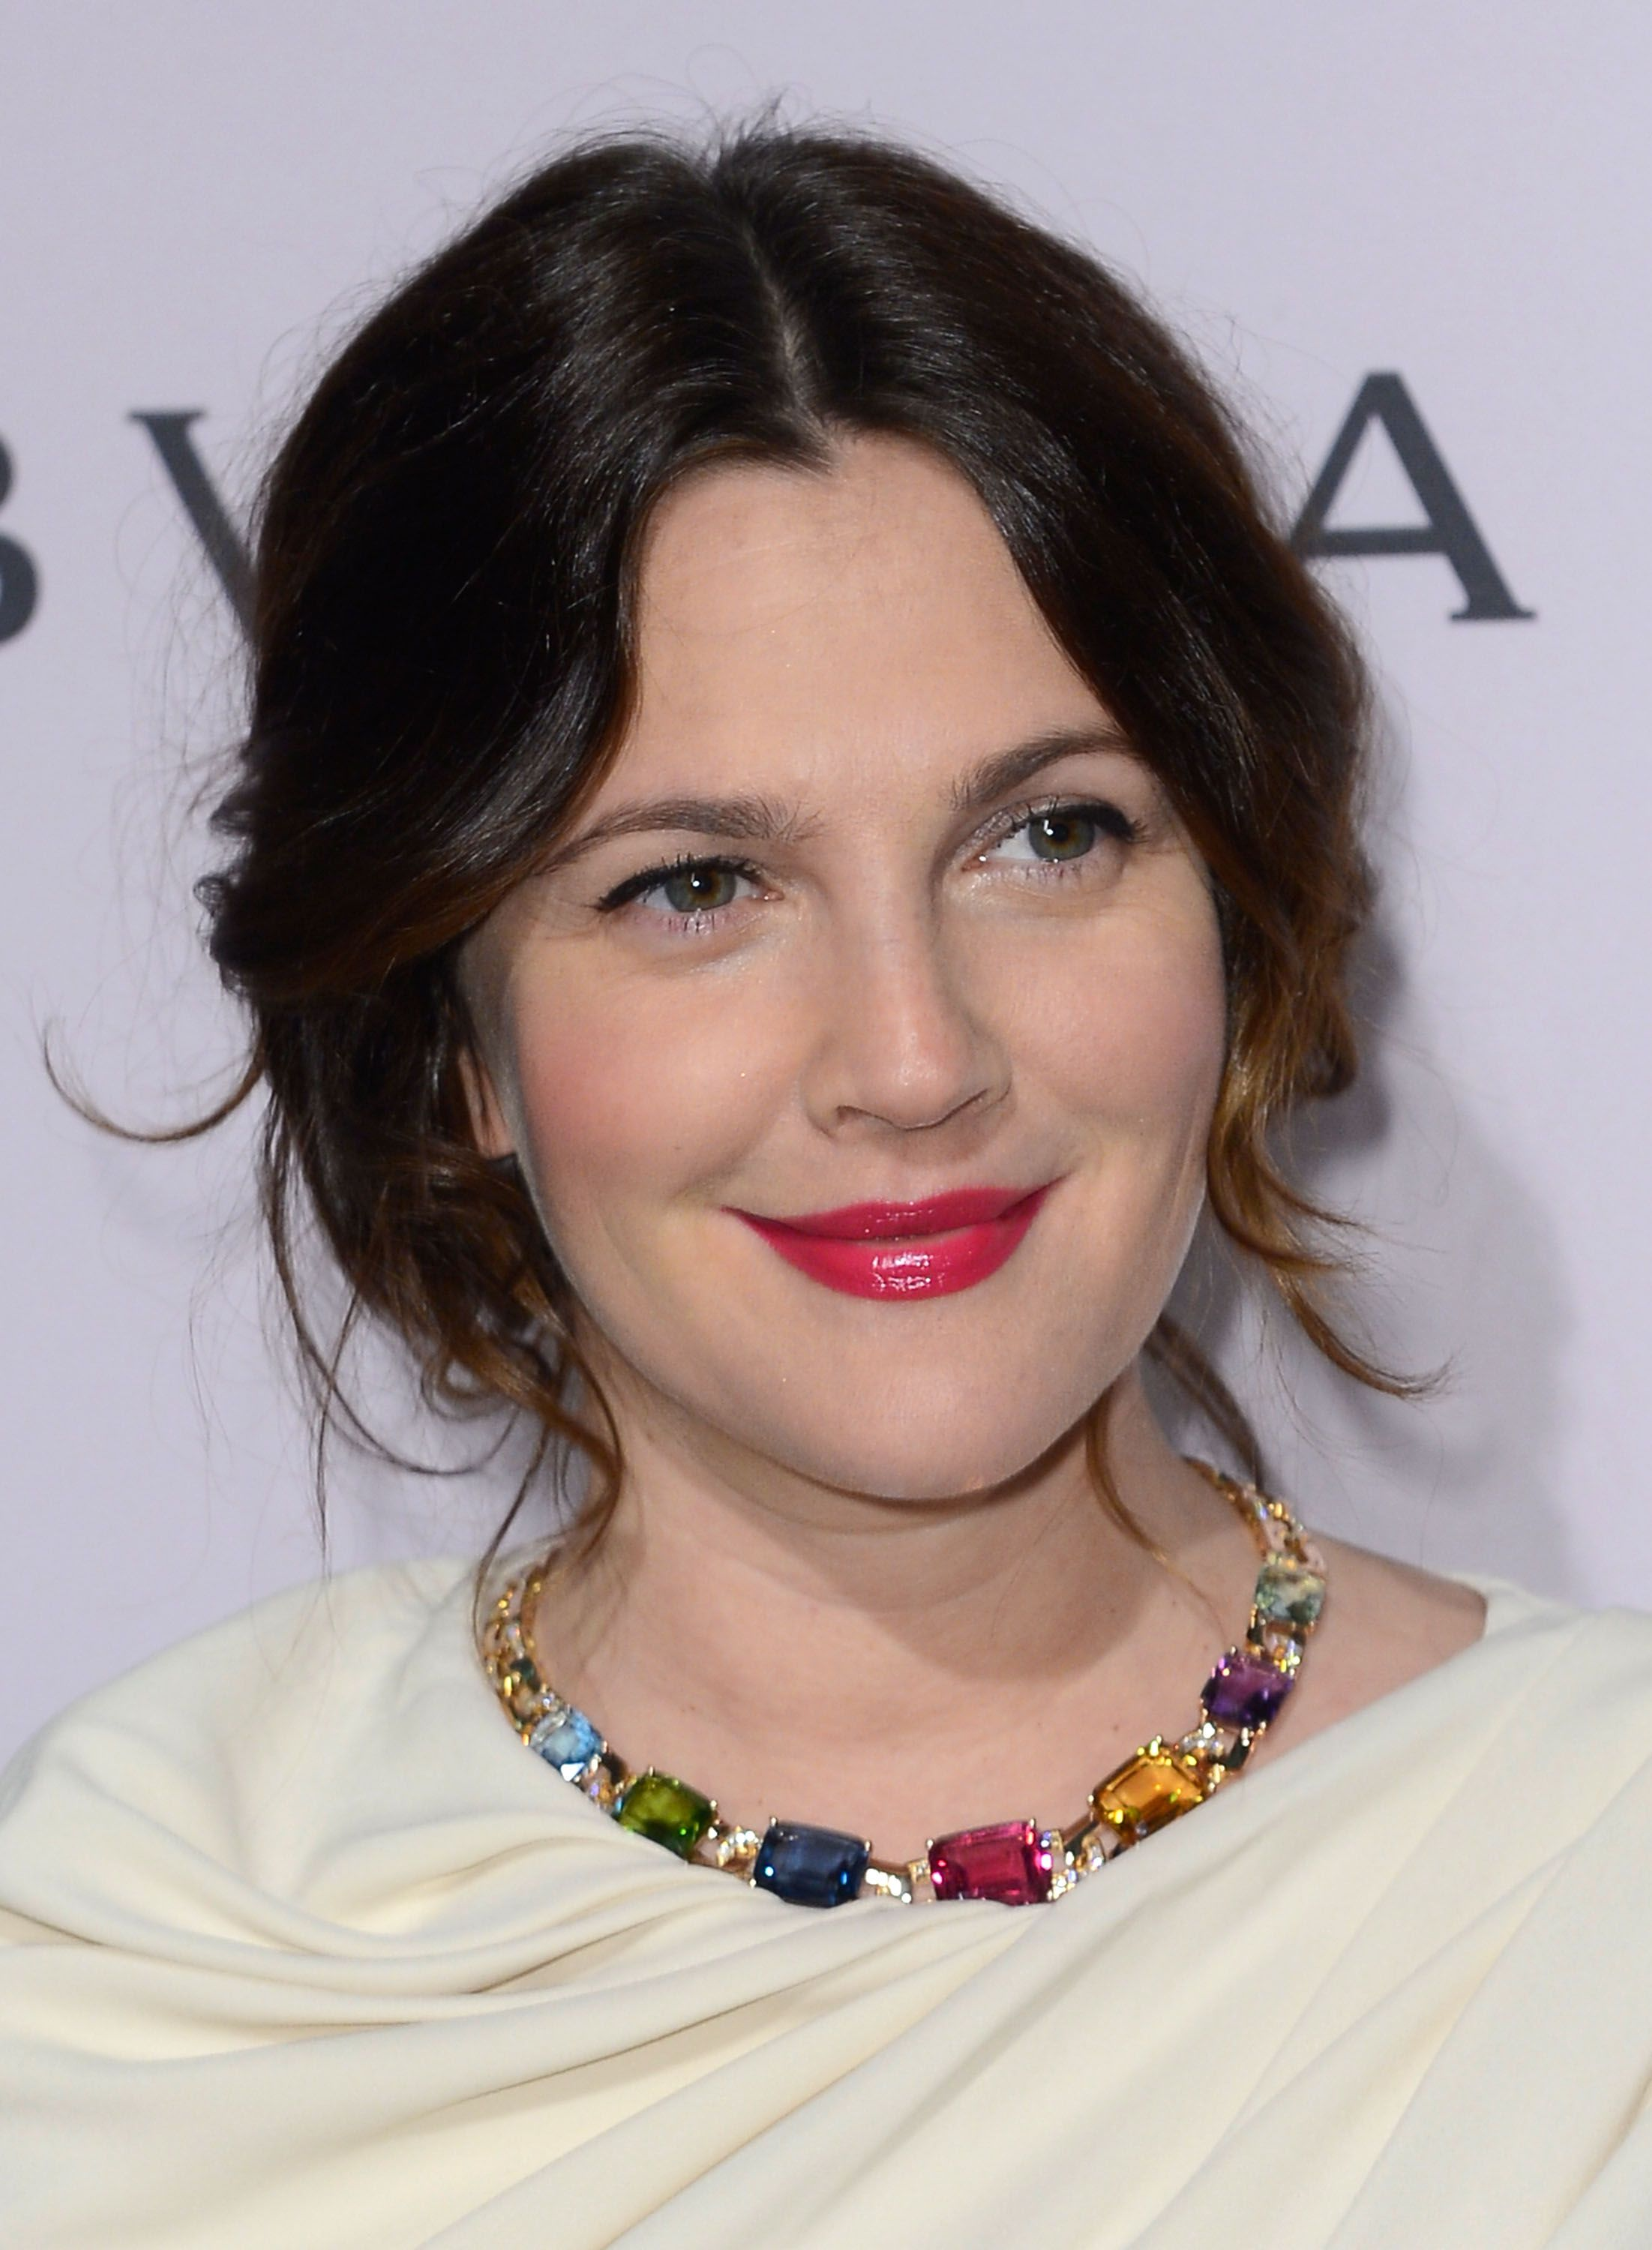 Drew Barrymore. Hair. Lips. Naturally